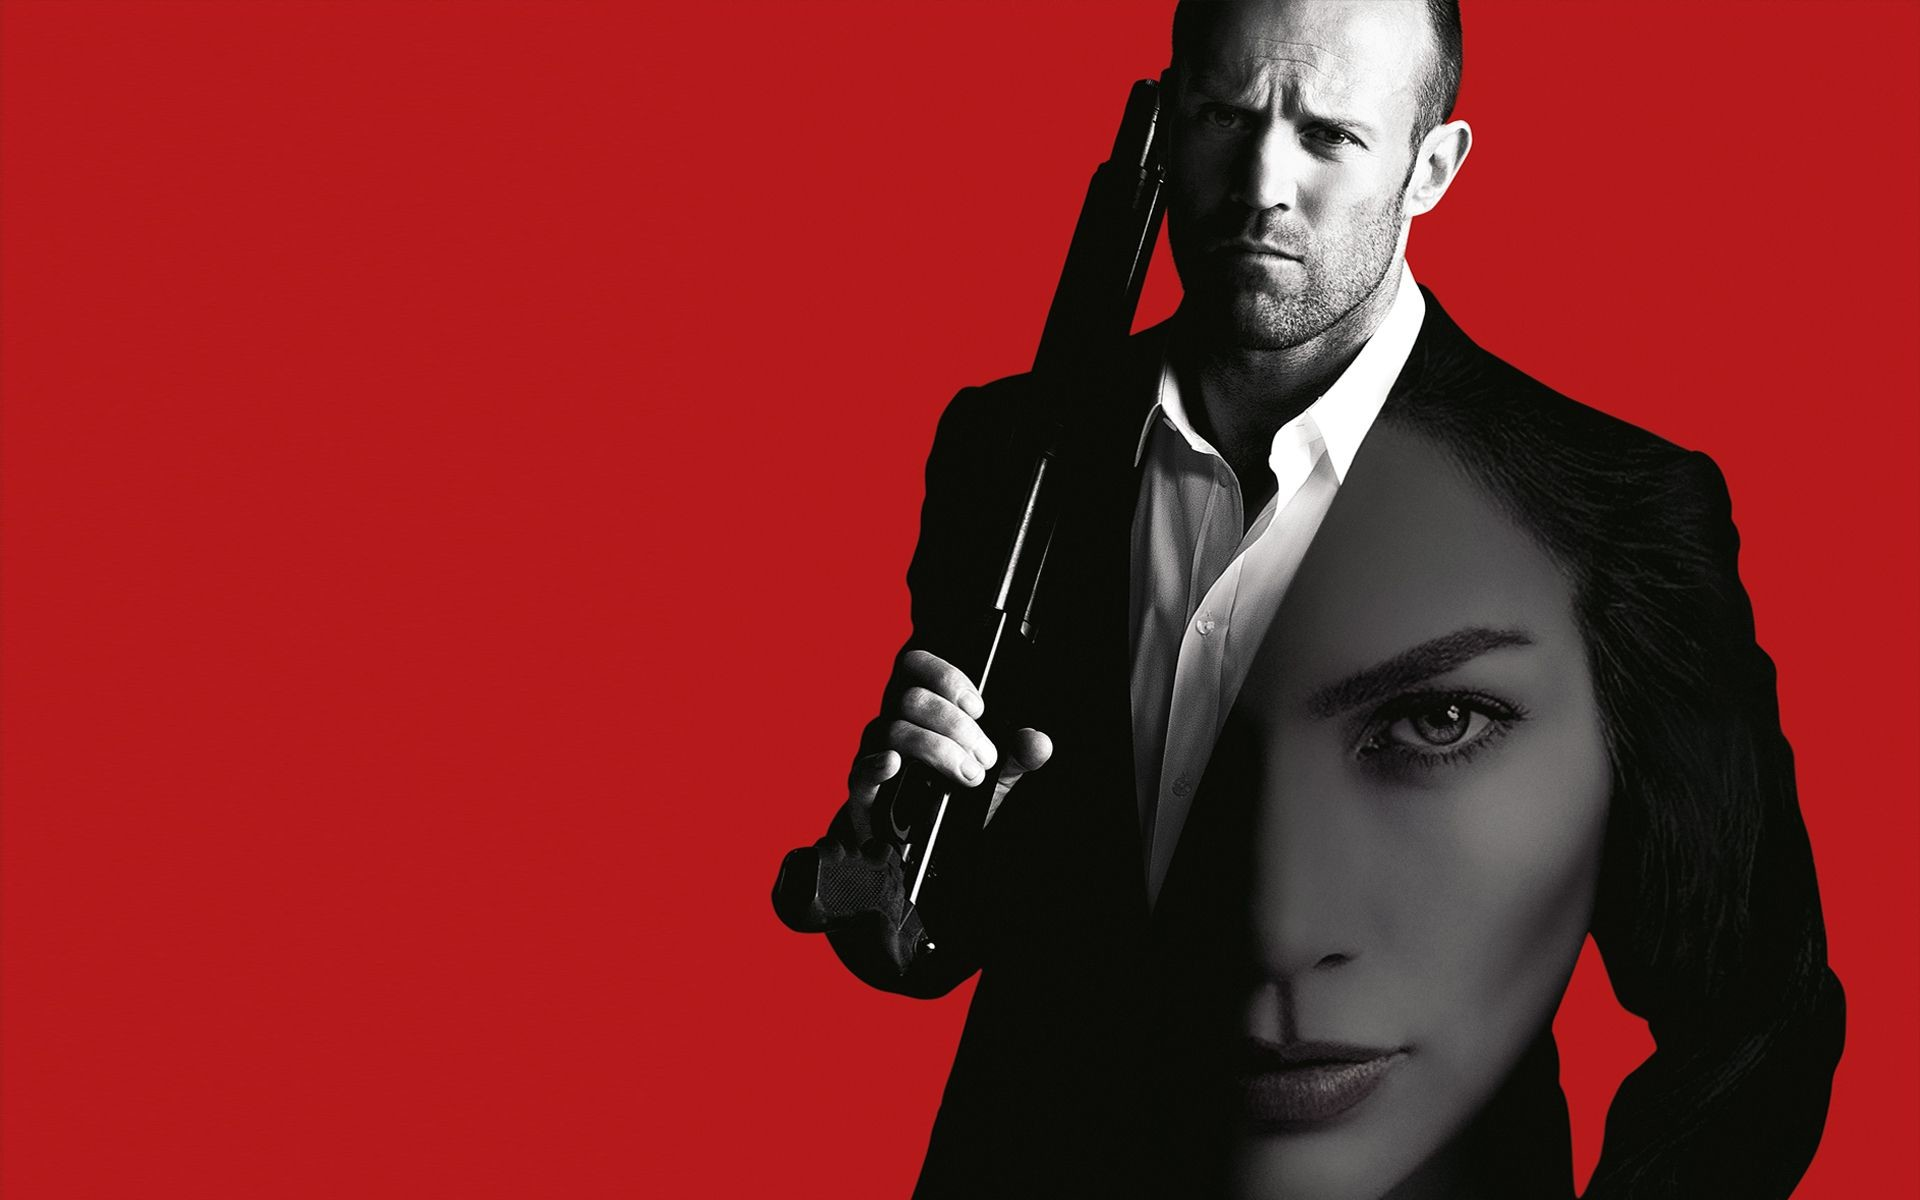 1920x1200 Jason Statham HD Wallpapers and Backgrounds 1024×768 Jason Statham Wallpaper (44 Wallpapers